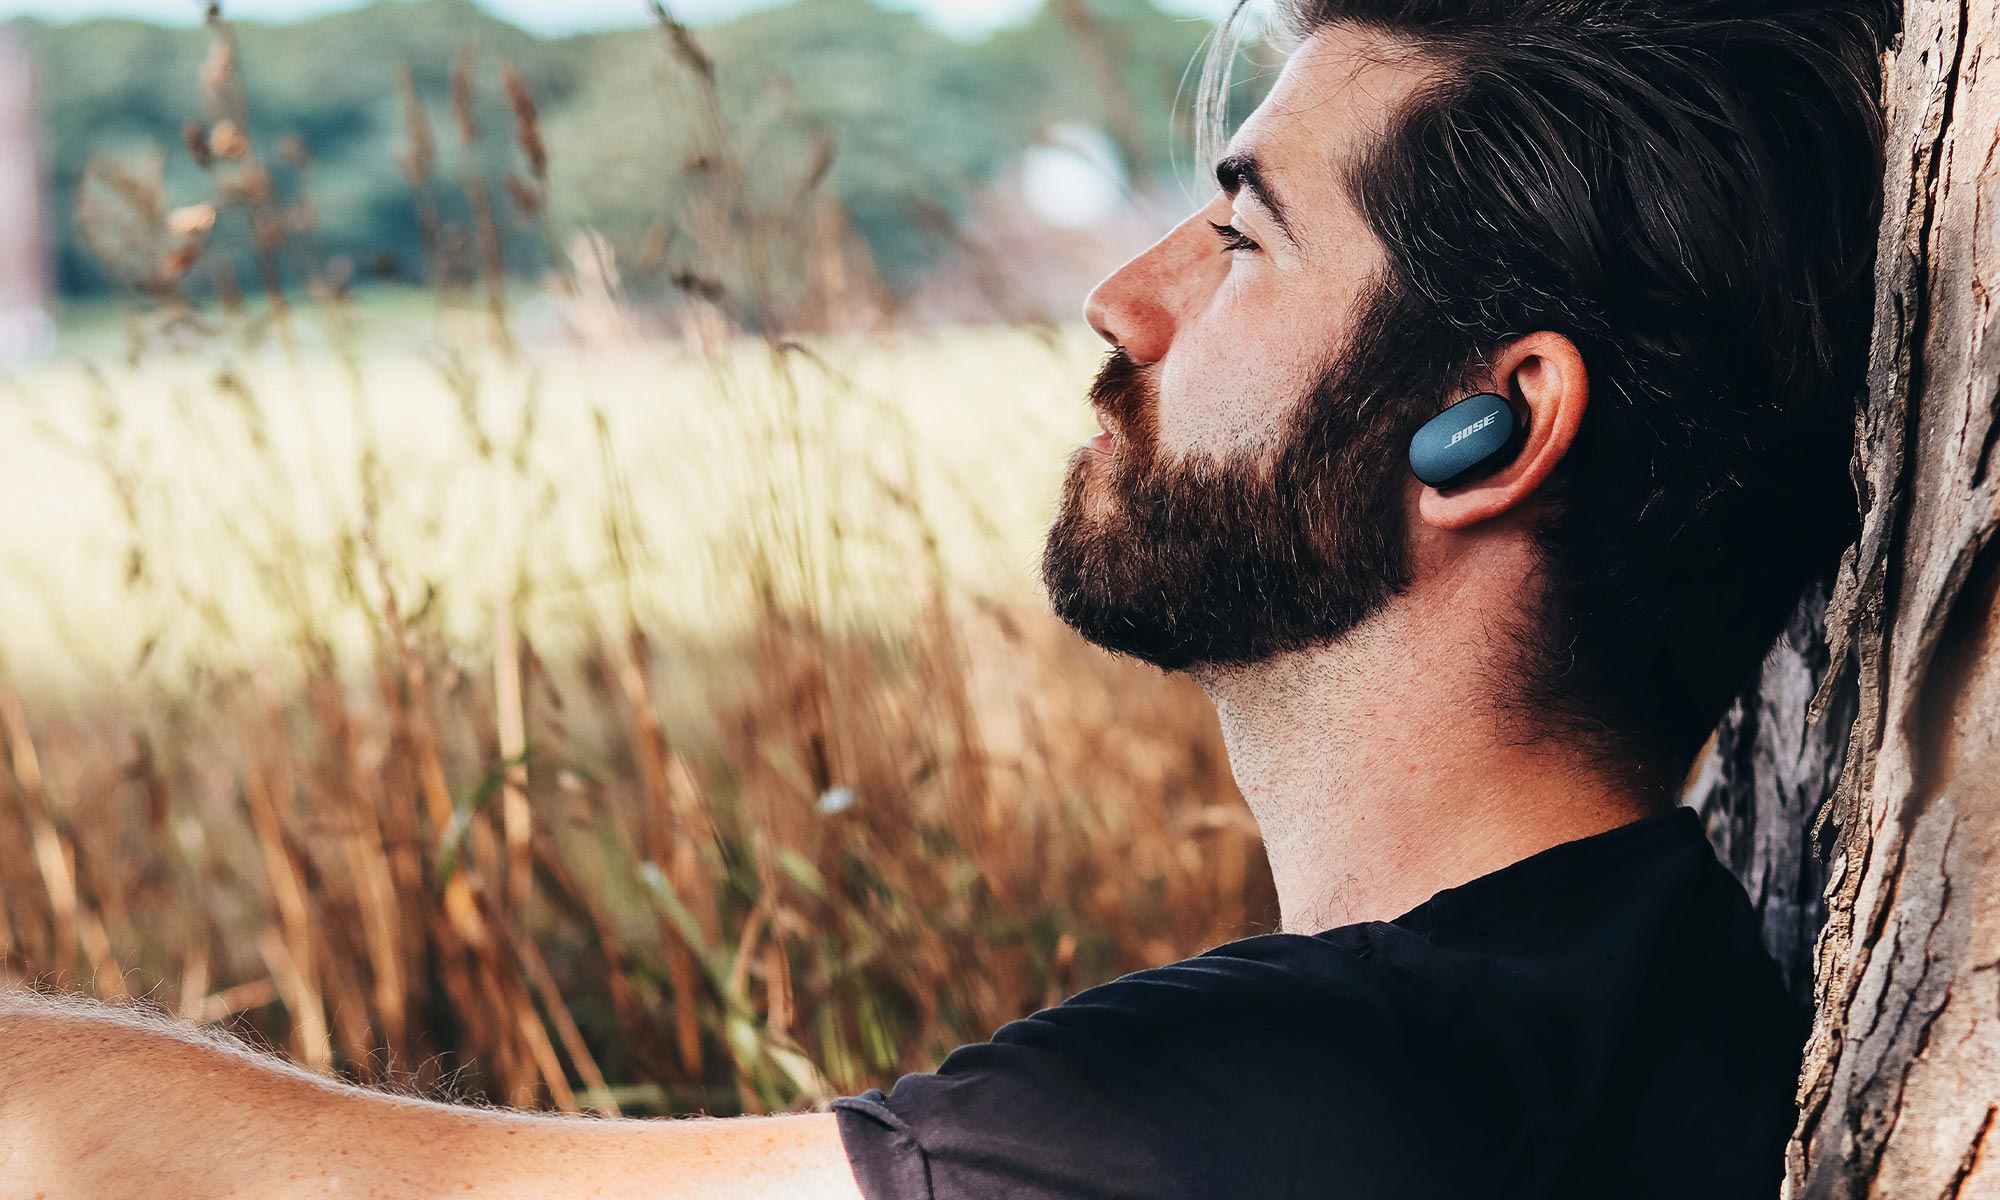 man listening to music with earbuds